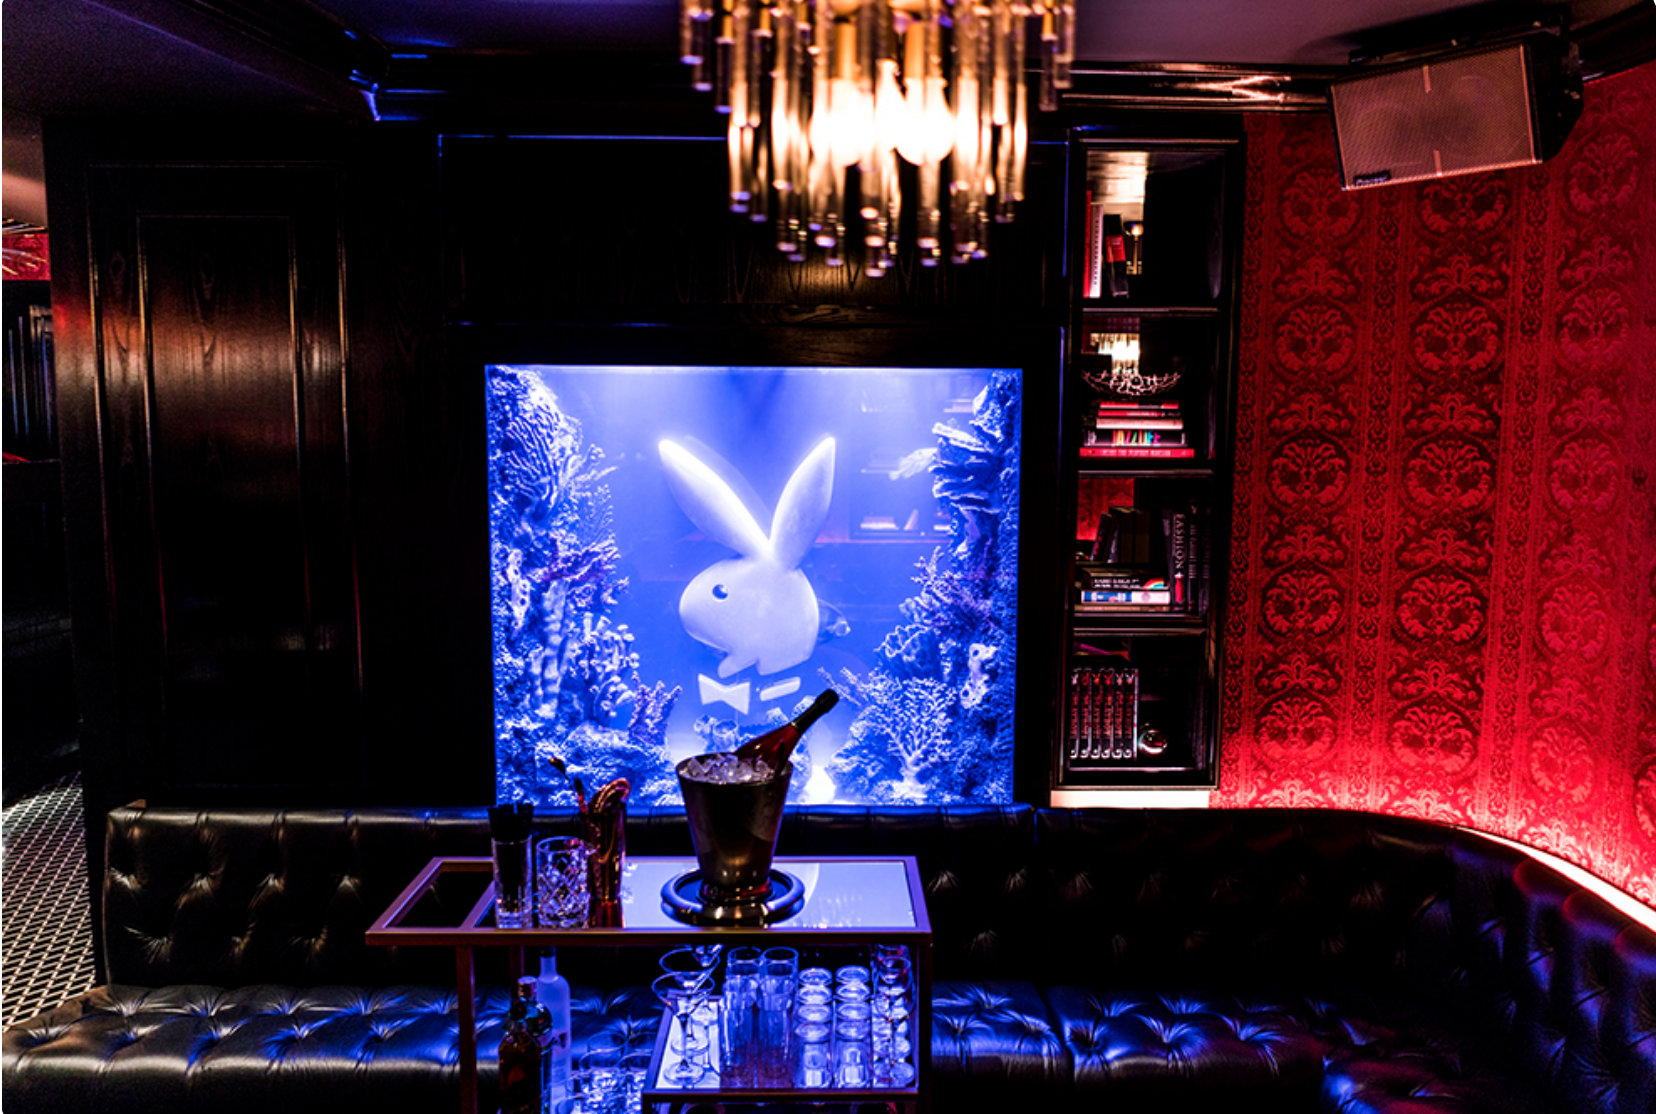 Playboy Club Interior shows lights, booth, bunny image